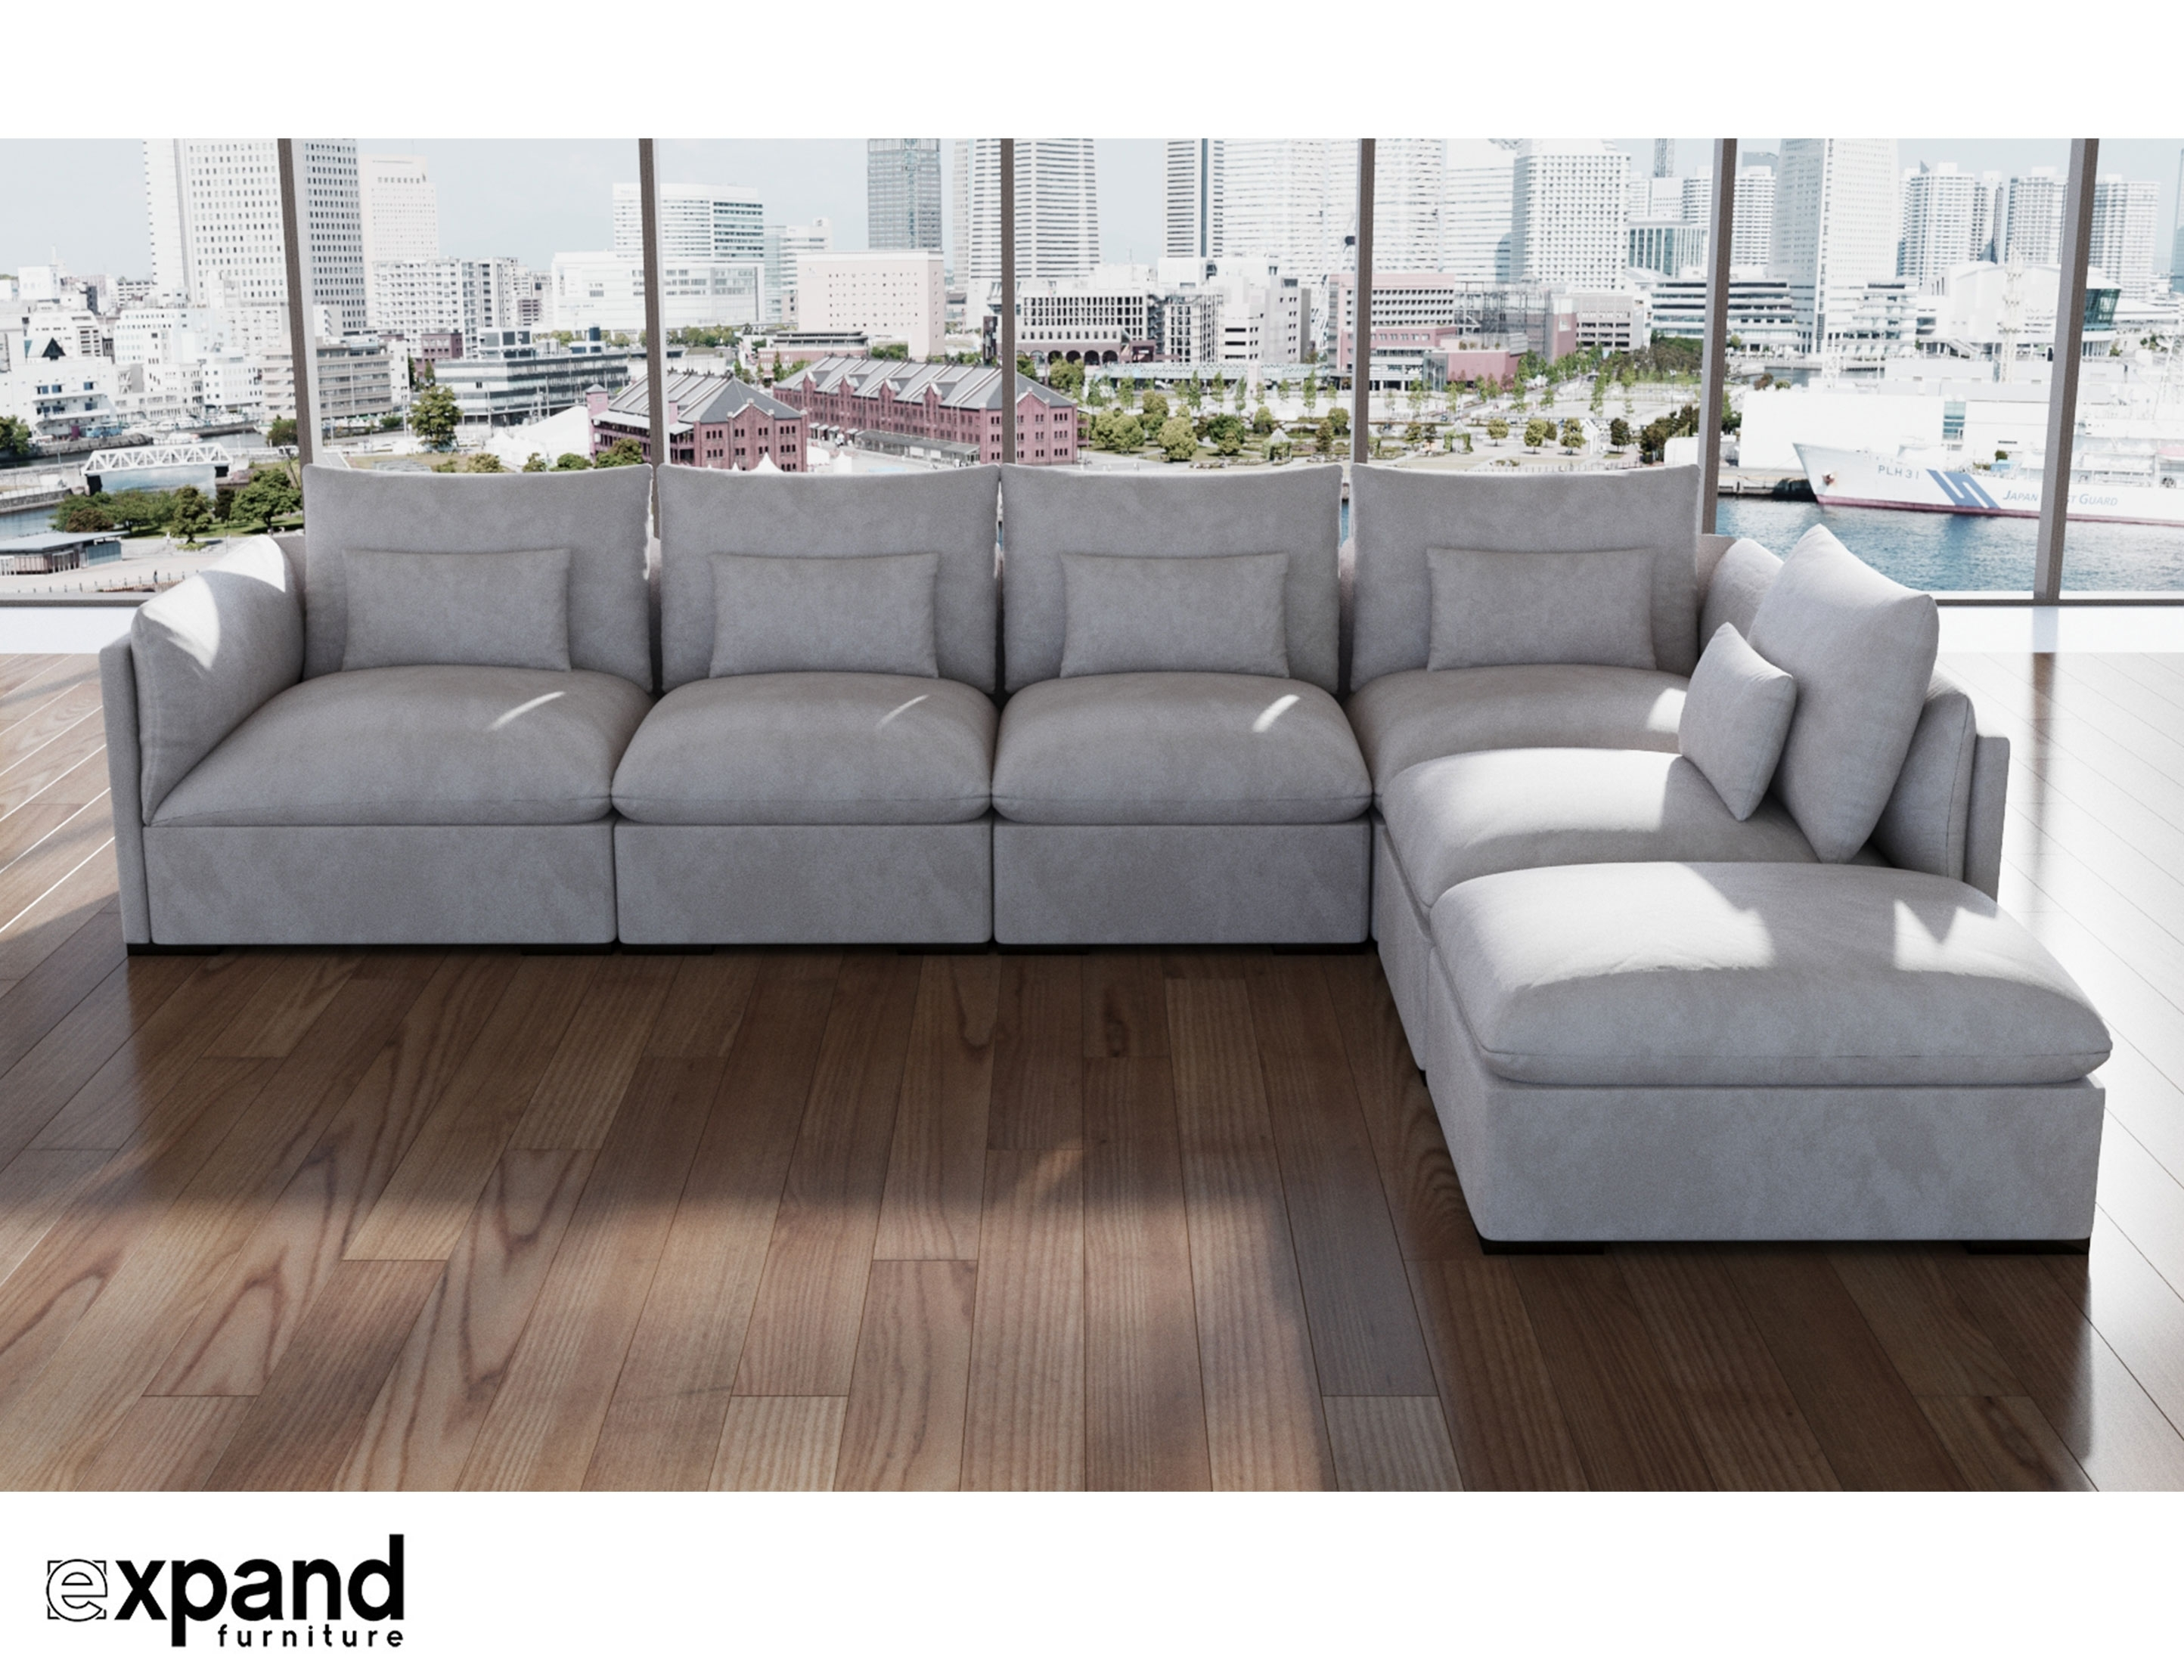 Adagio: Luxury Sectional Modular Sofa Set Of 4 | Expand Furniture Throughout Goose Down Sectional Sofas (Image 1 of 10)